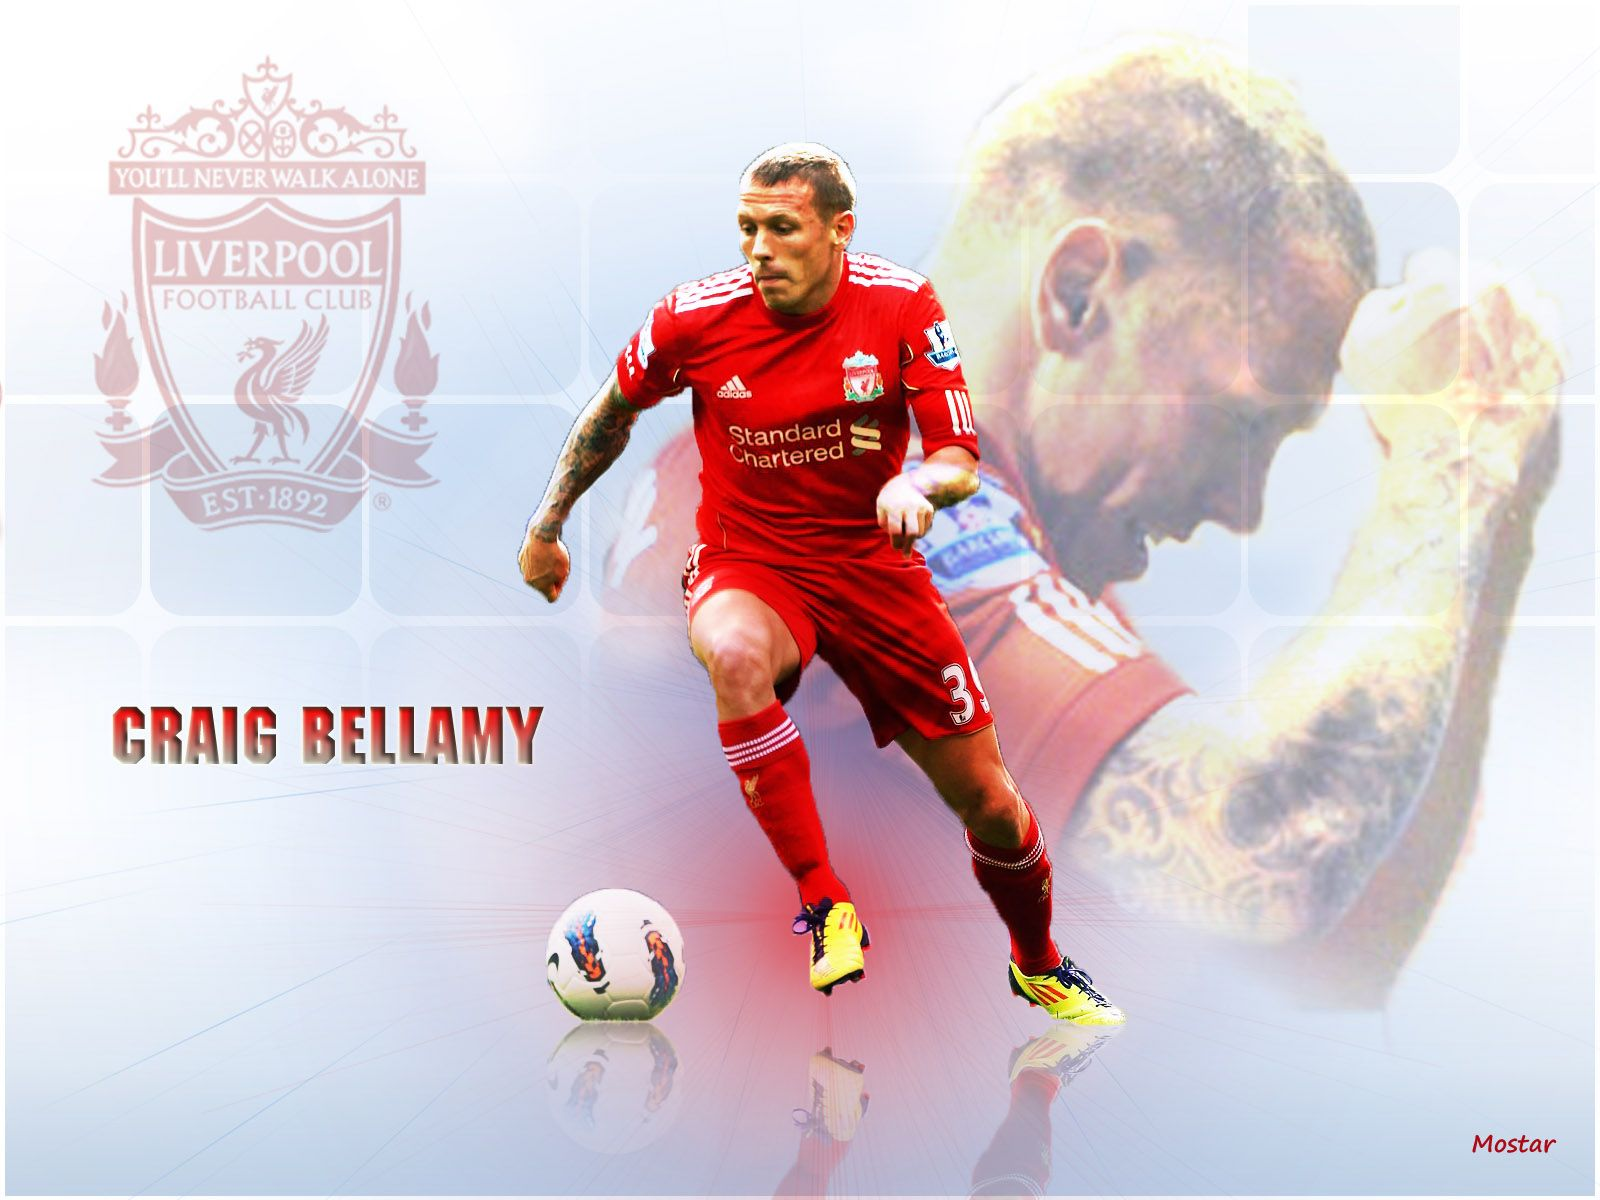 Craig Bellamy Ace Liverpool Football Club Liverpool Football Football Ball